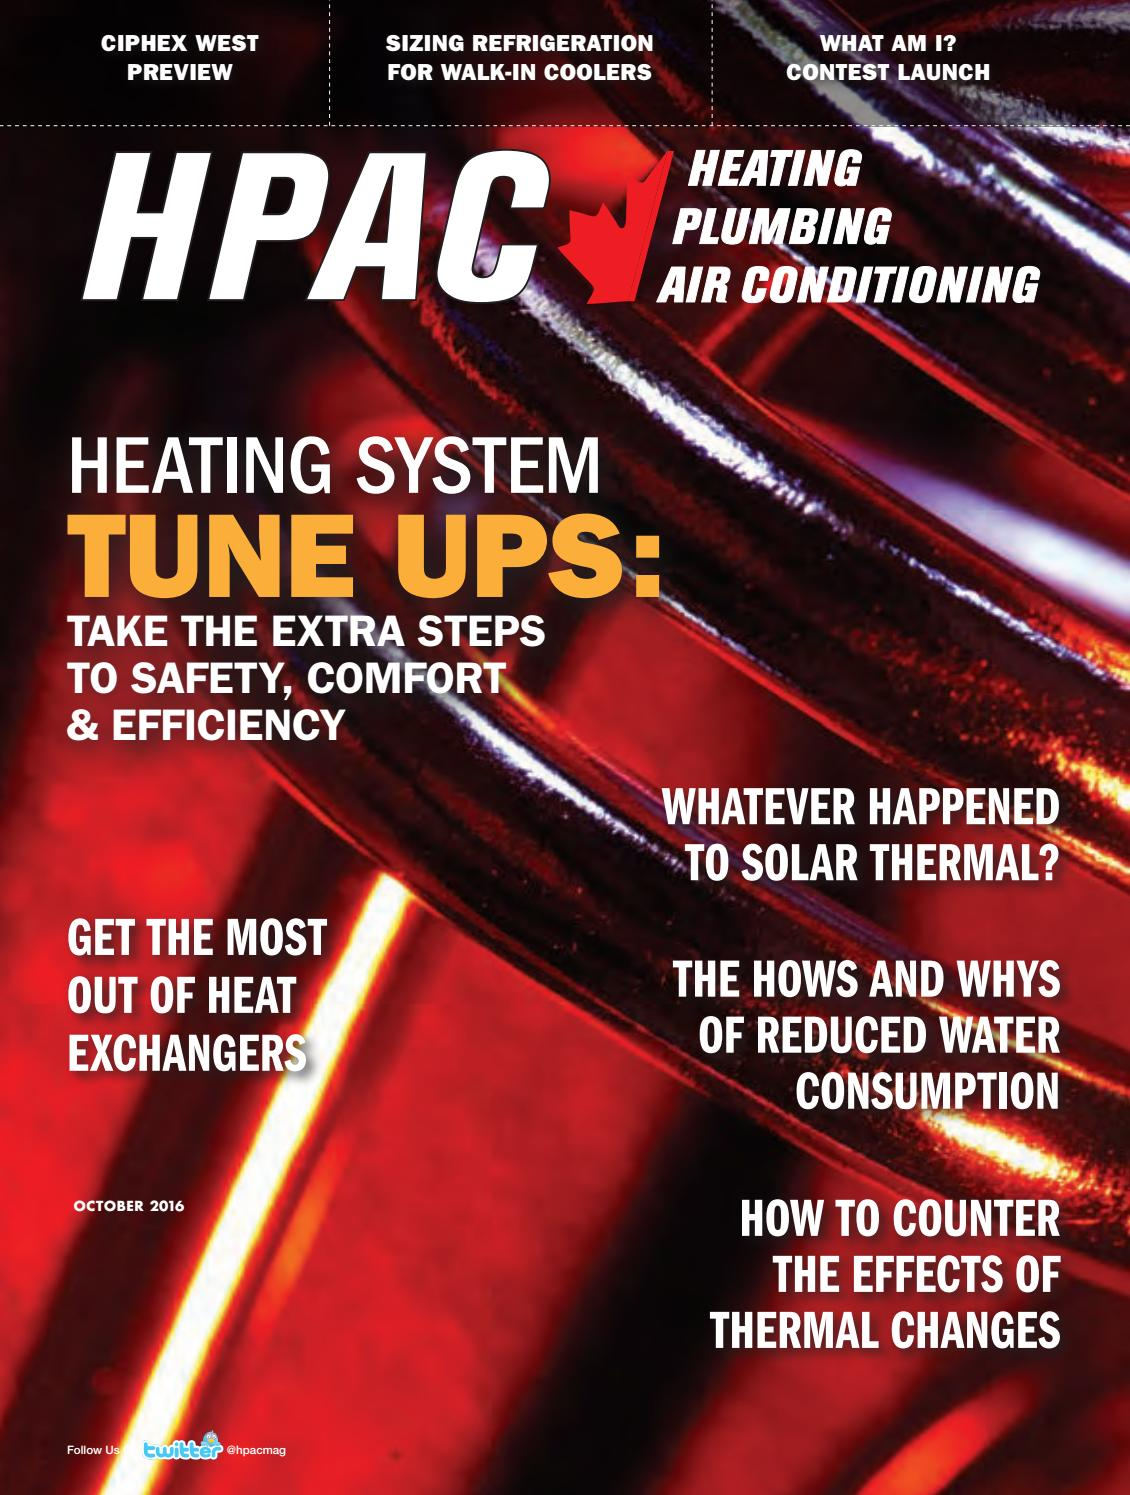 Hpac November 2016 By Annex Newcom Lp Issuu For An Apollo Hydronic Air Handler That Has A Wiring Diagram The Pdf